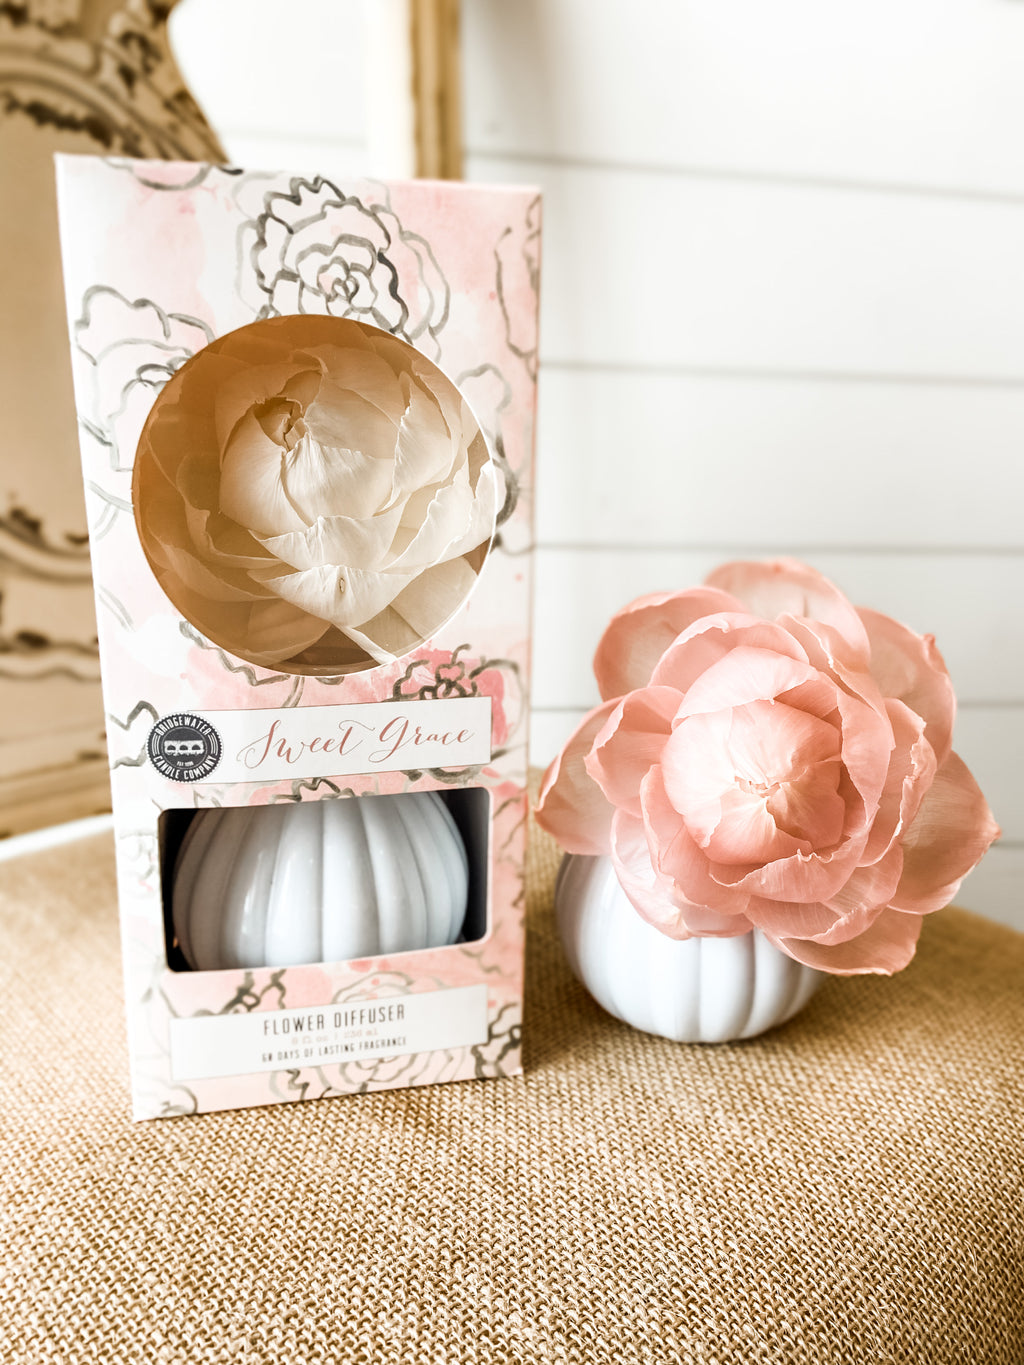 Sweet Grace Flower Diffuser